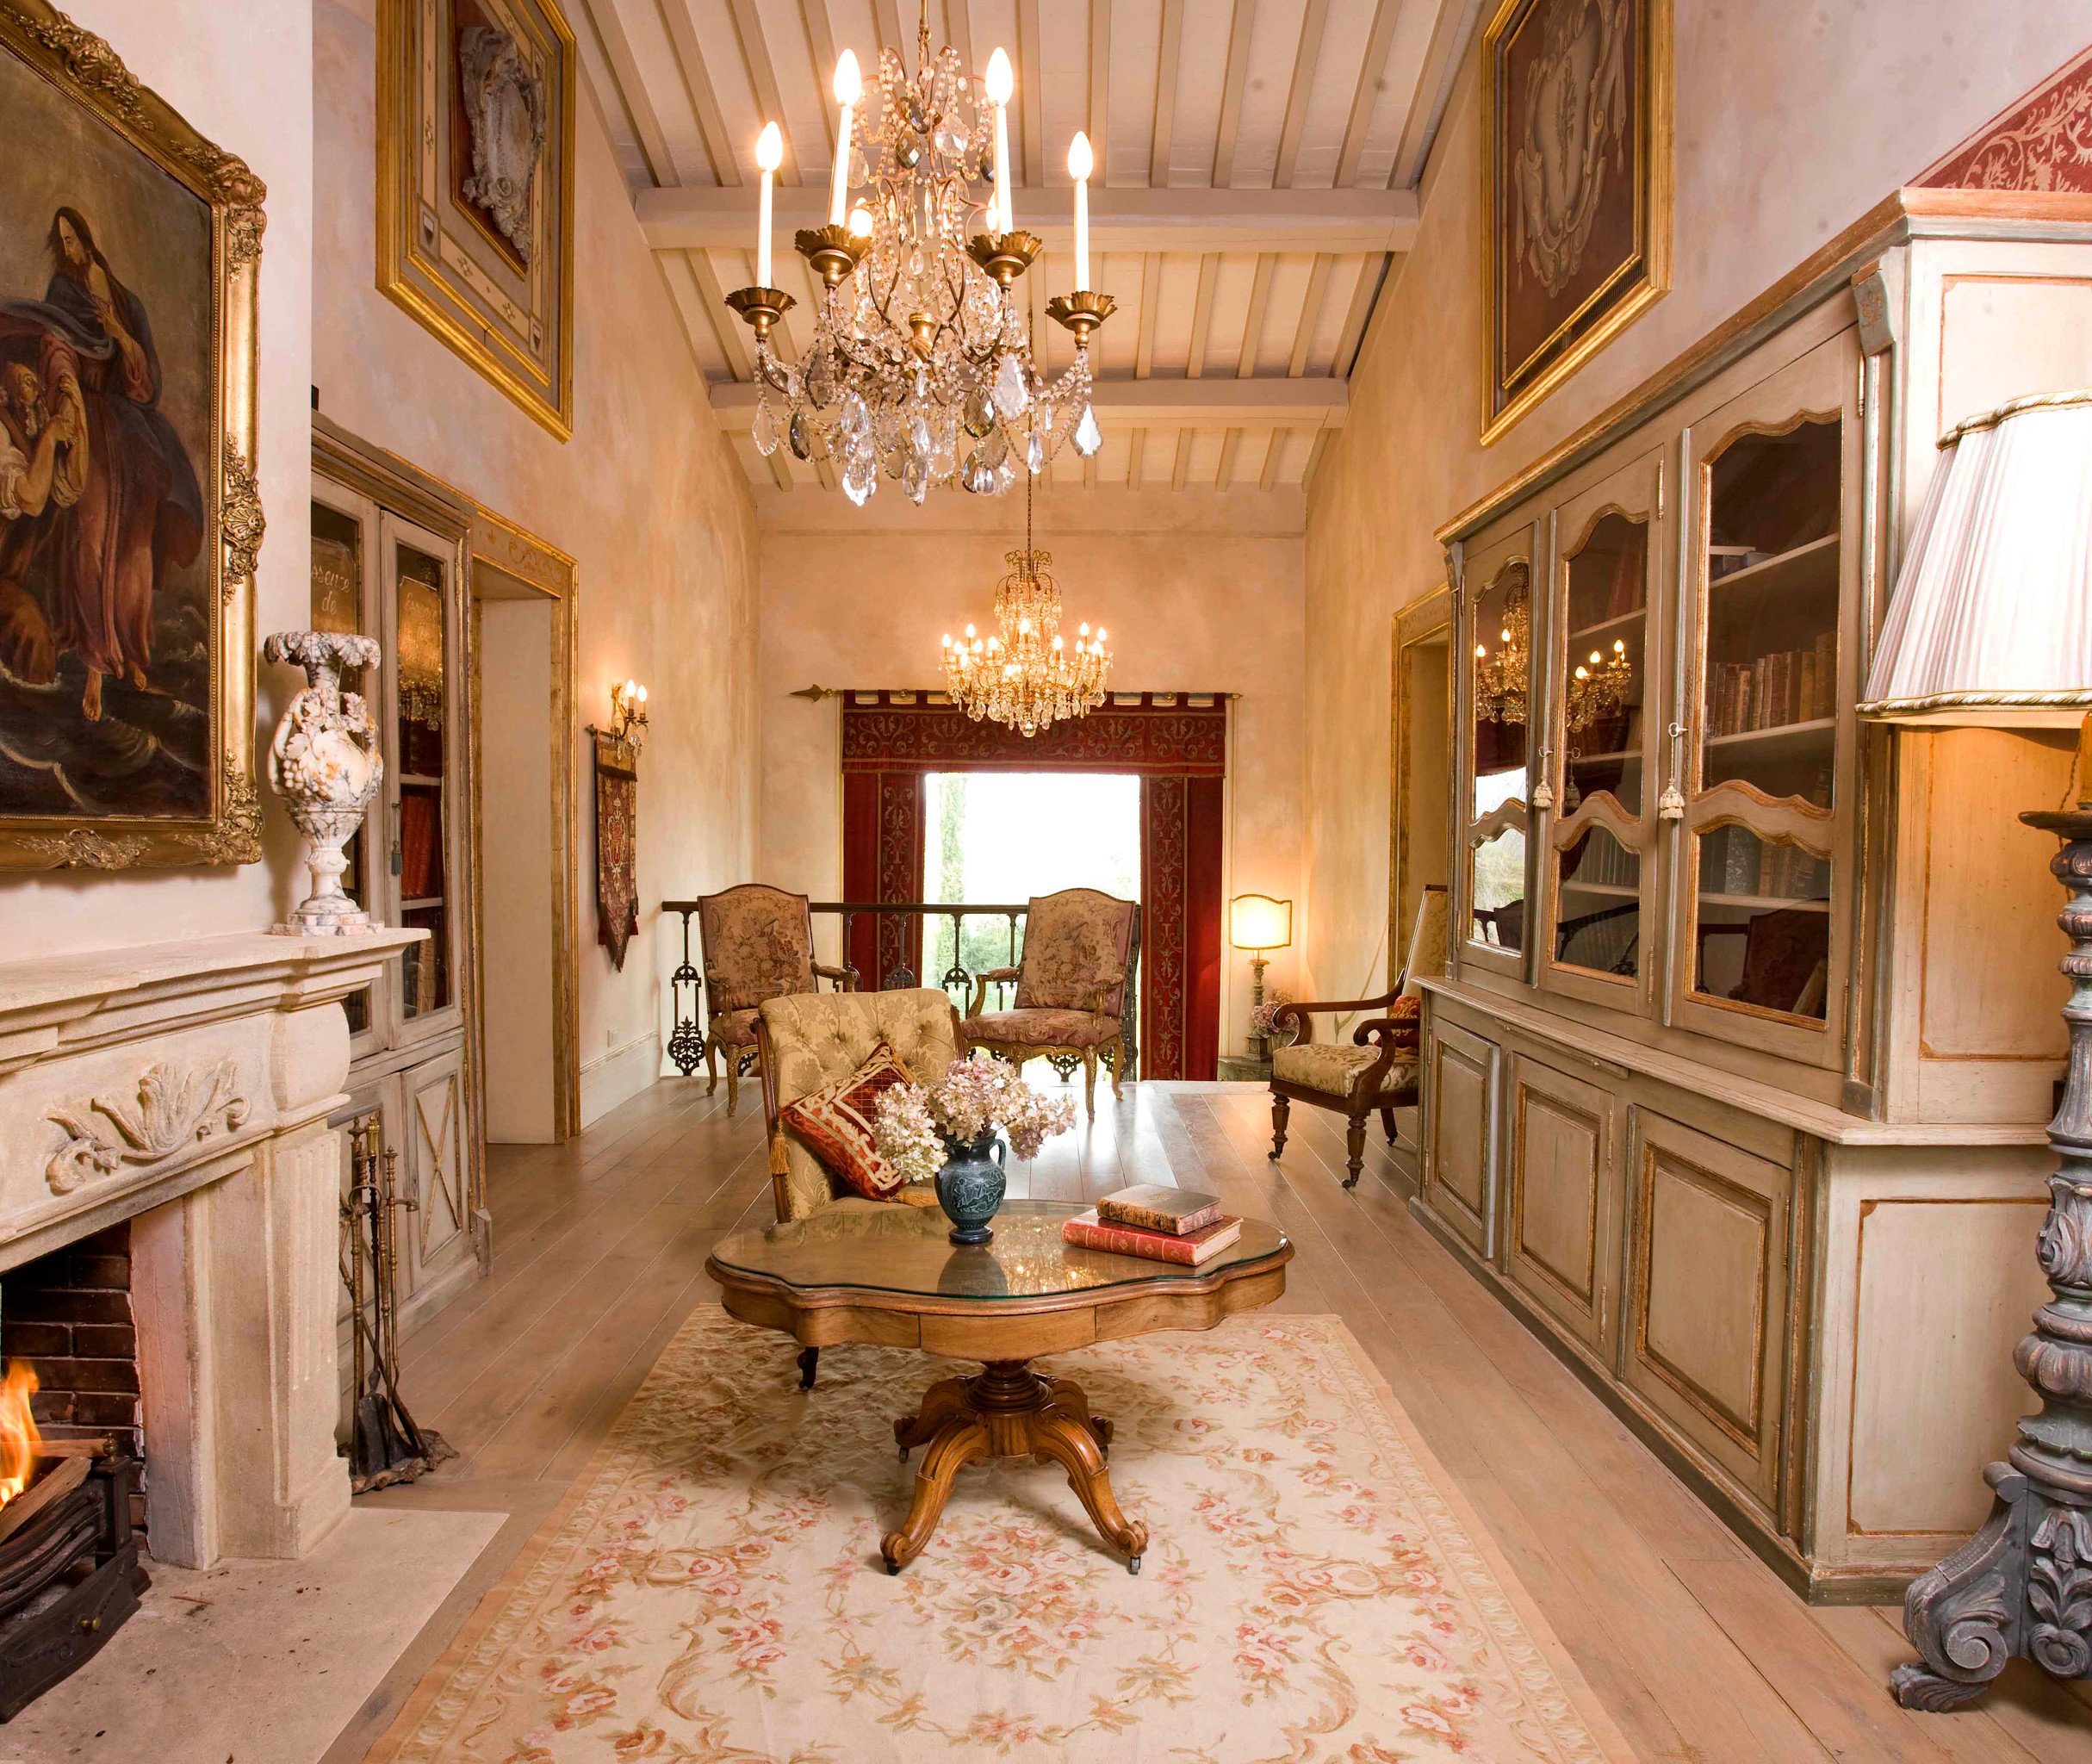 Country Cultural Elegant Historic Hotels Lounge Luxury Travel property living room mansion home Fireplace Lobby palace stone